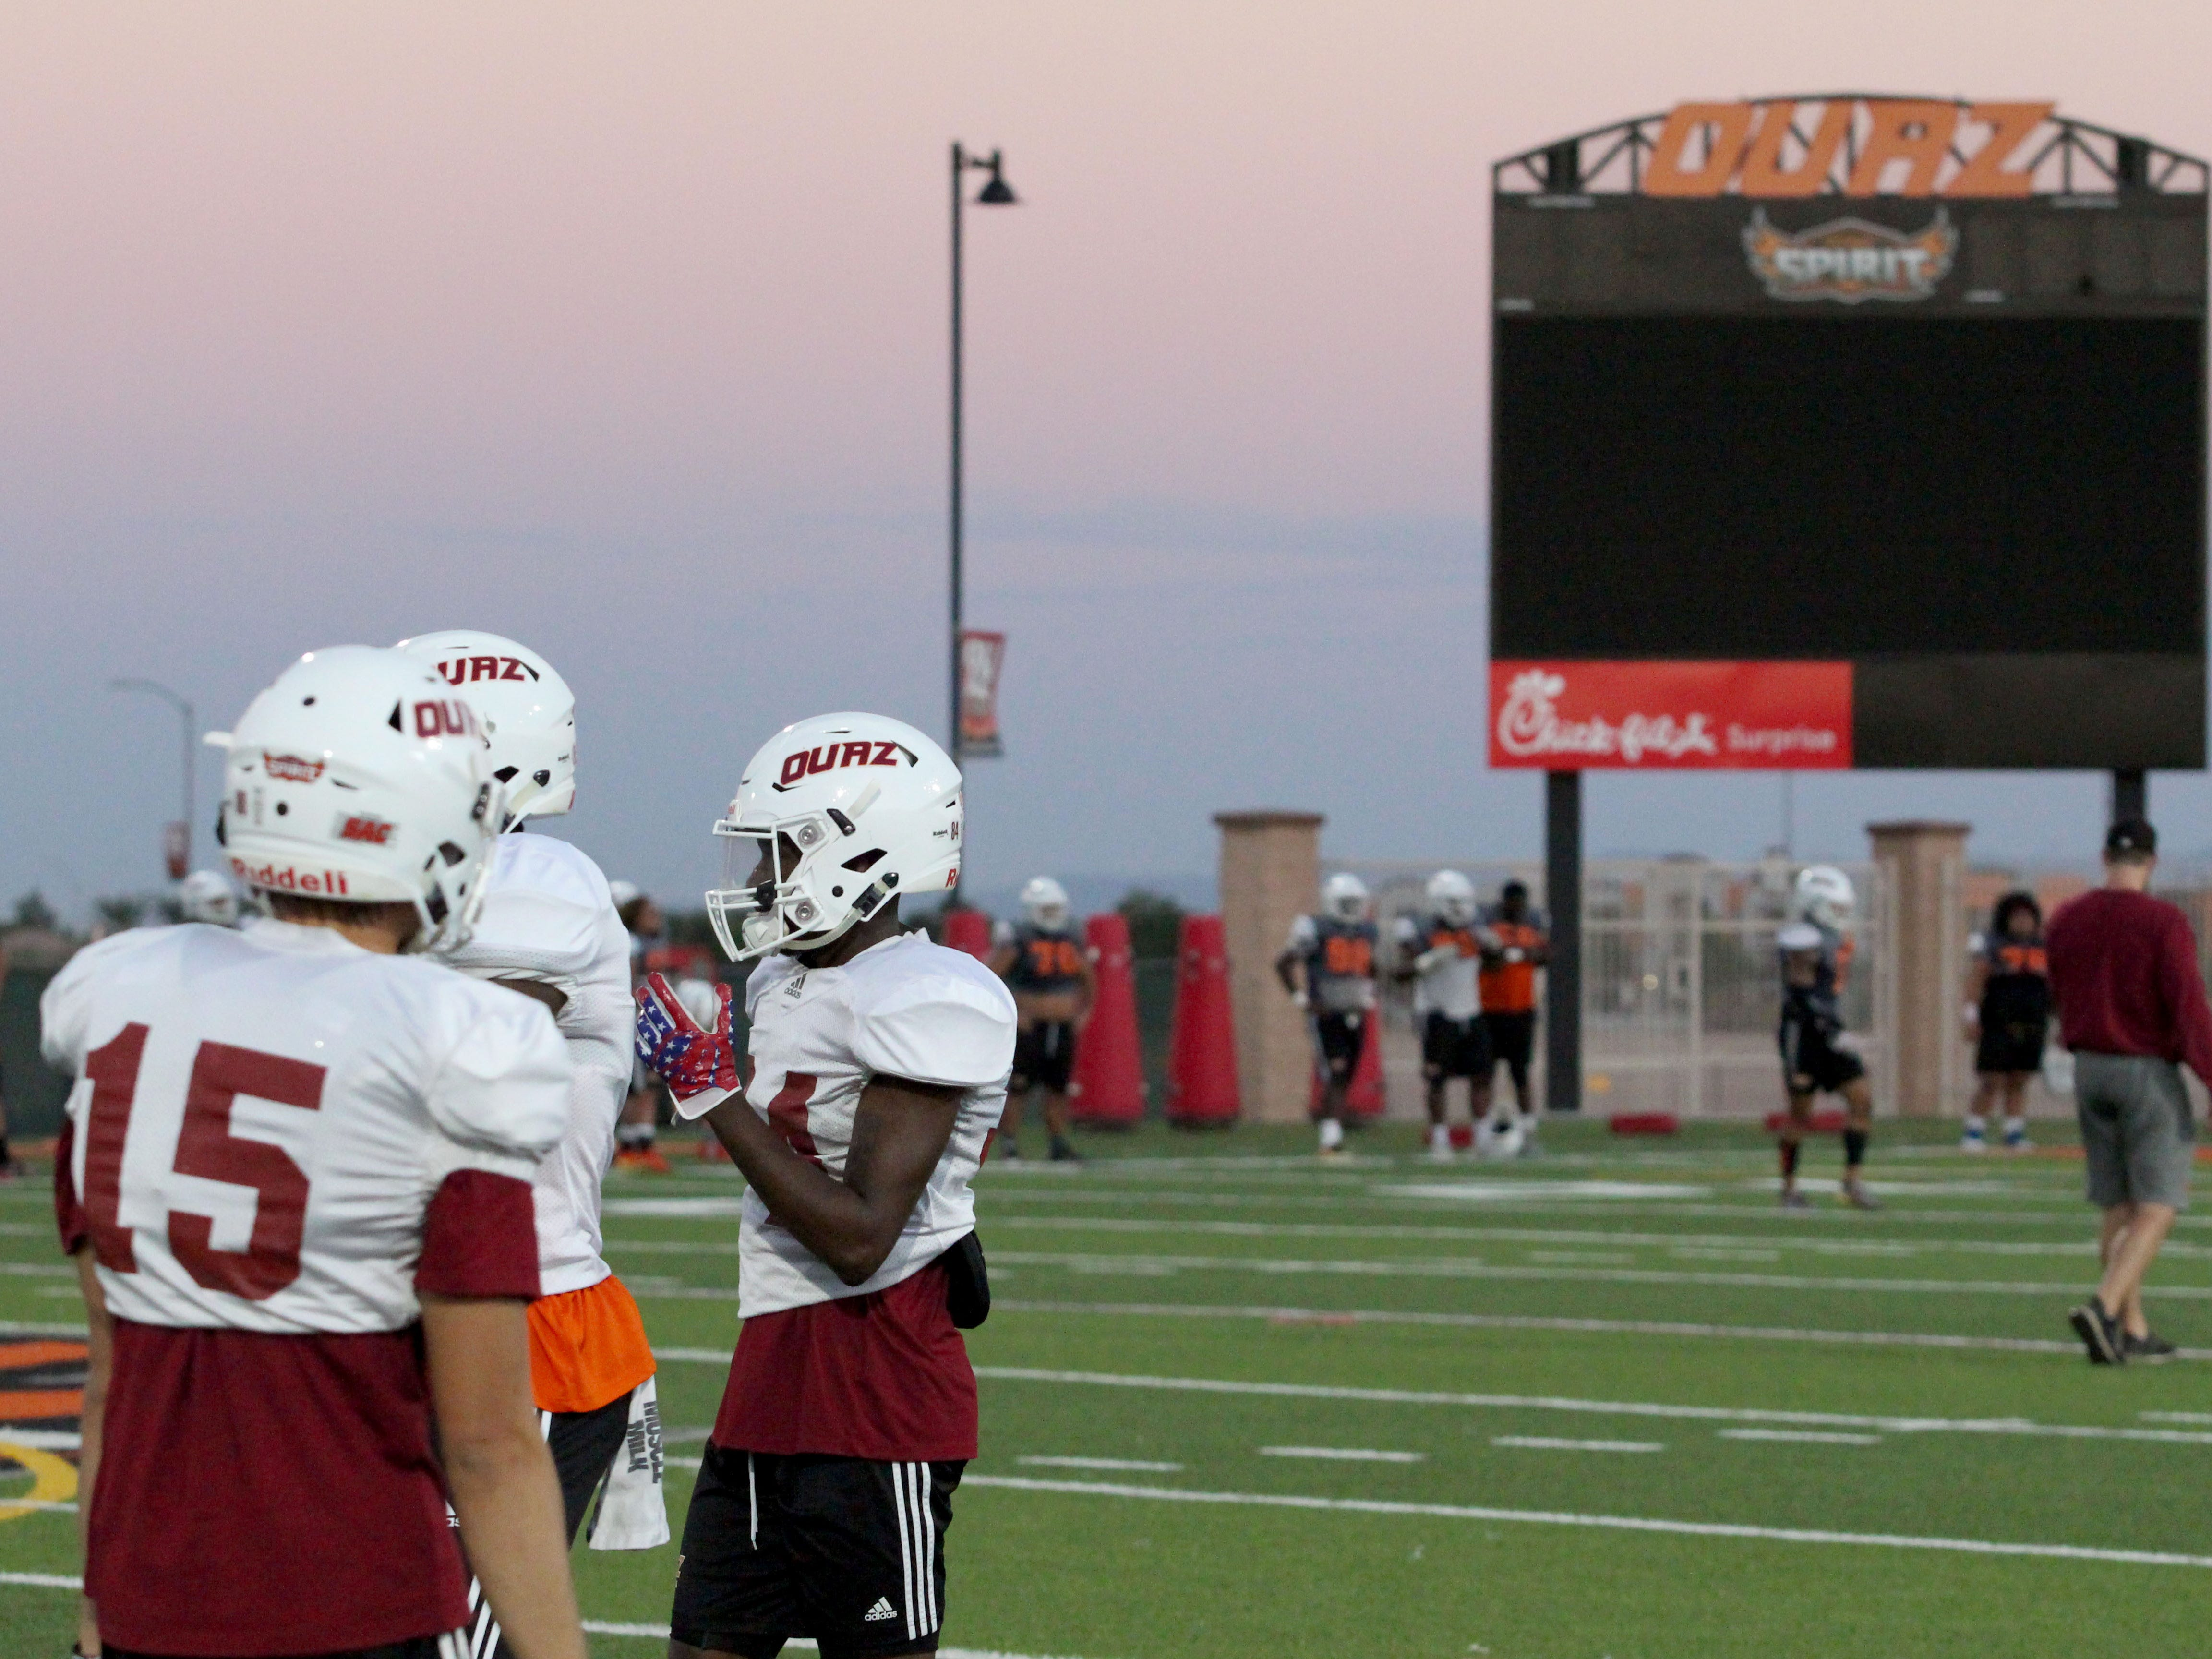 OUAZ players practice on Tuesday night in Surprise on Sept. 11, 2018.